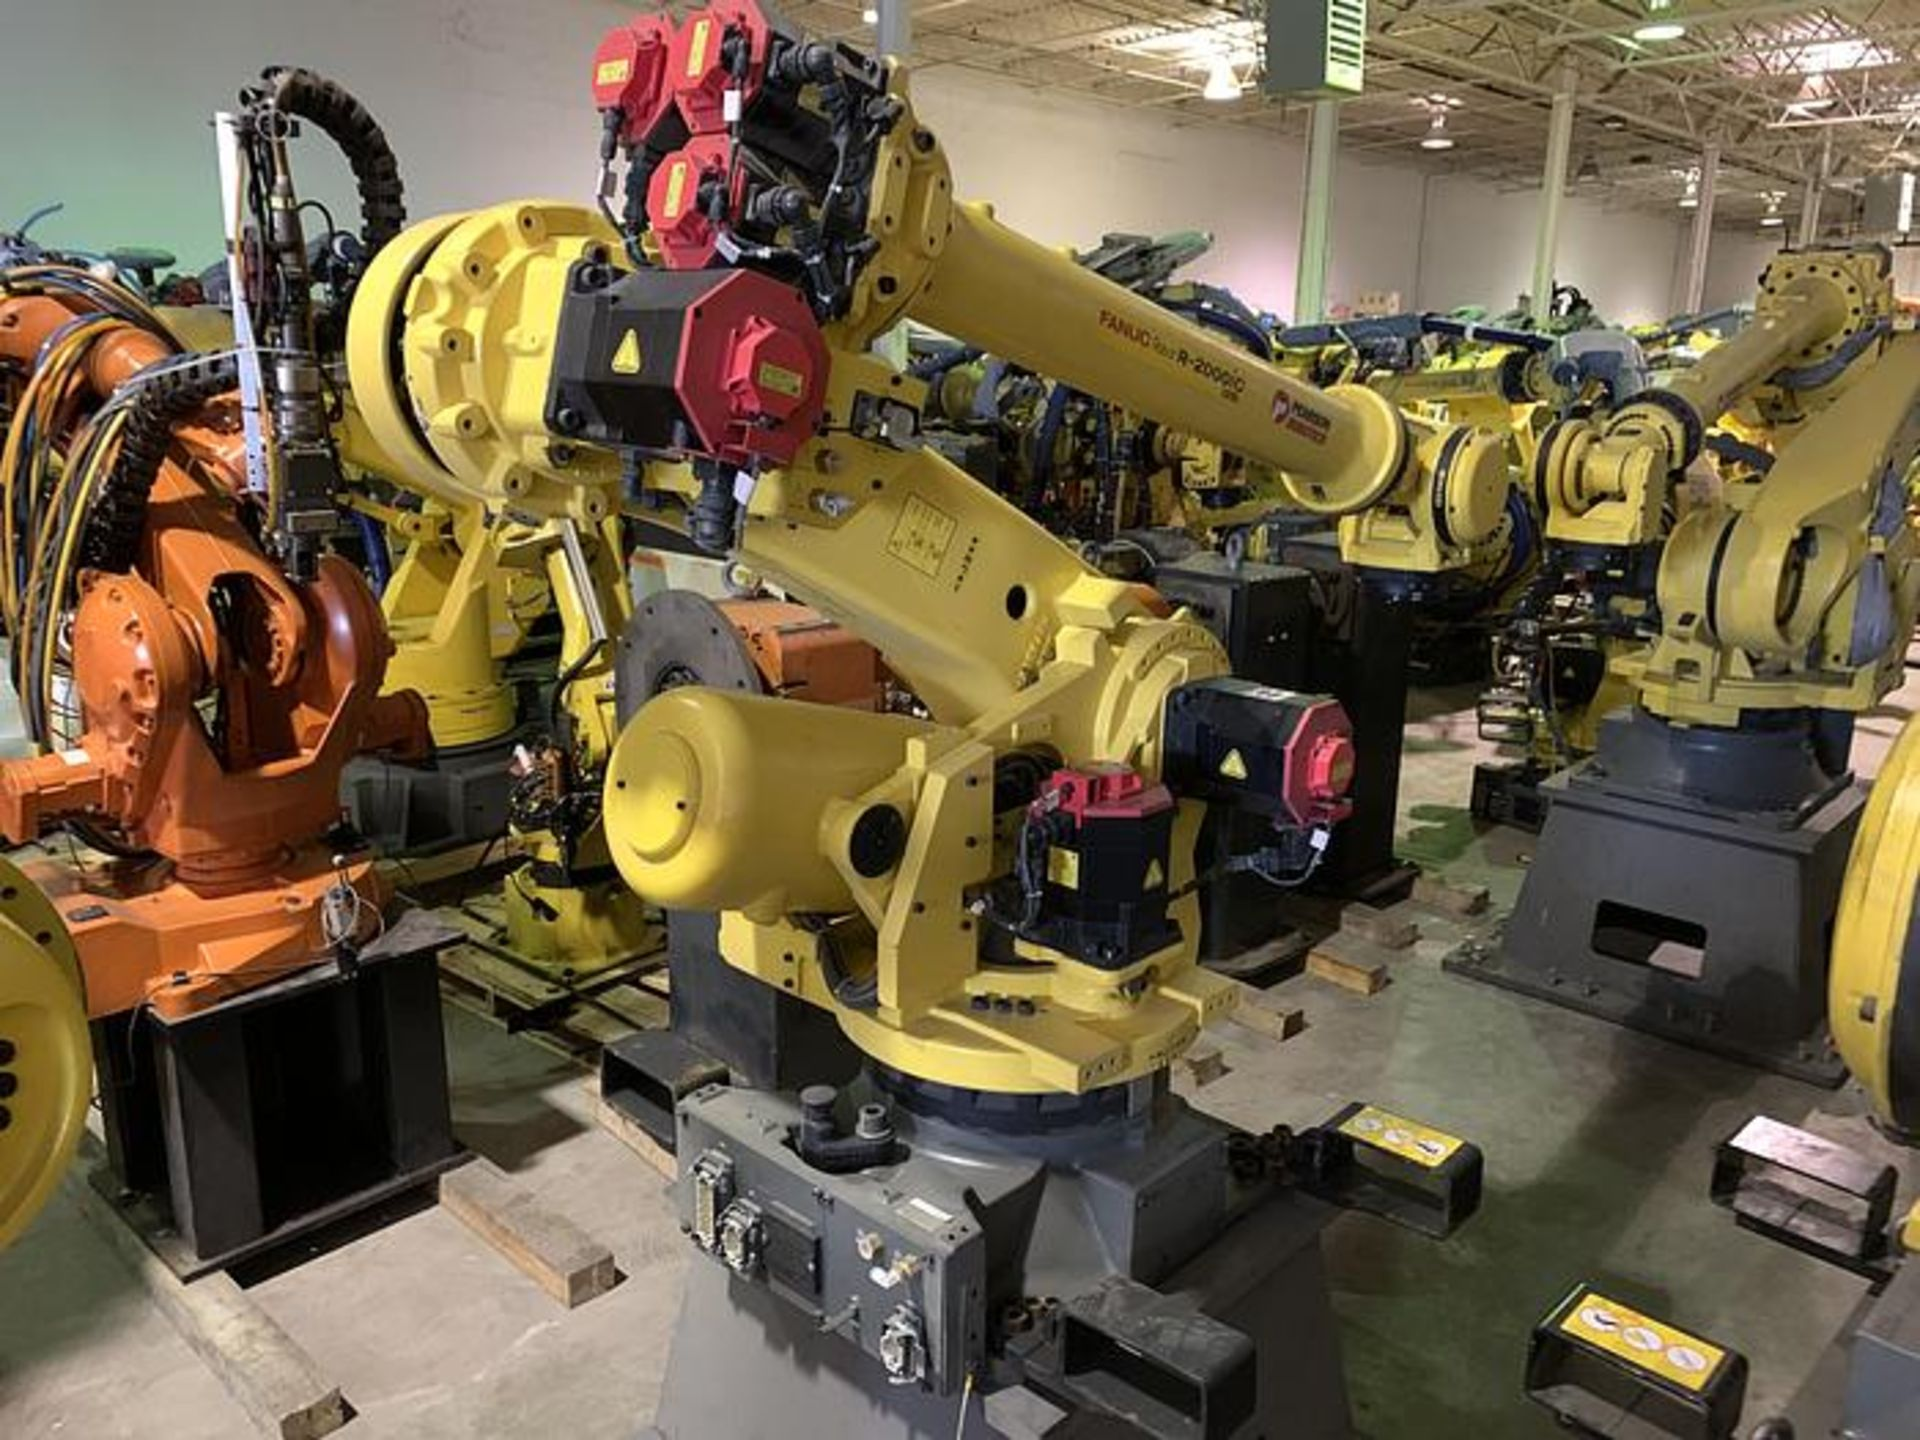 FANUC R2000iC/125L 6 AXIS CNC ROBOT WITH R30iB CONTROLLER, IR VISION, CABLES & REACH - Image 5 of 17